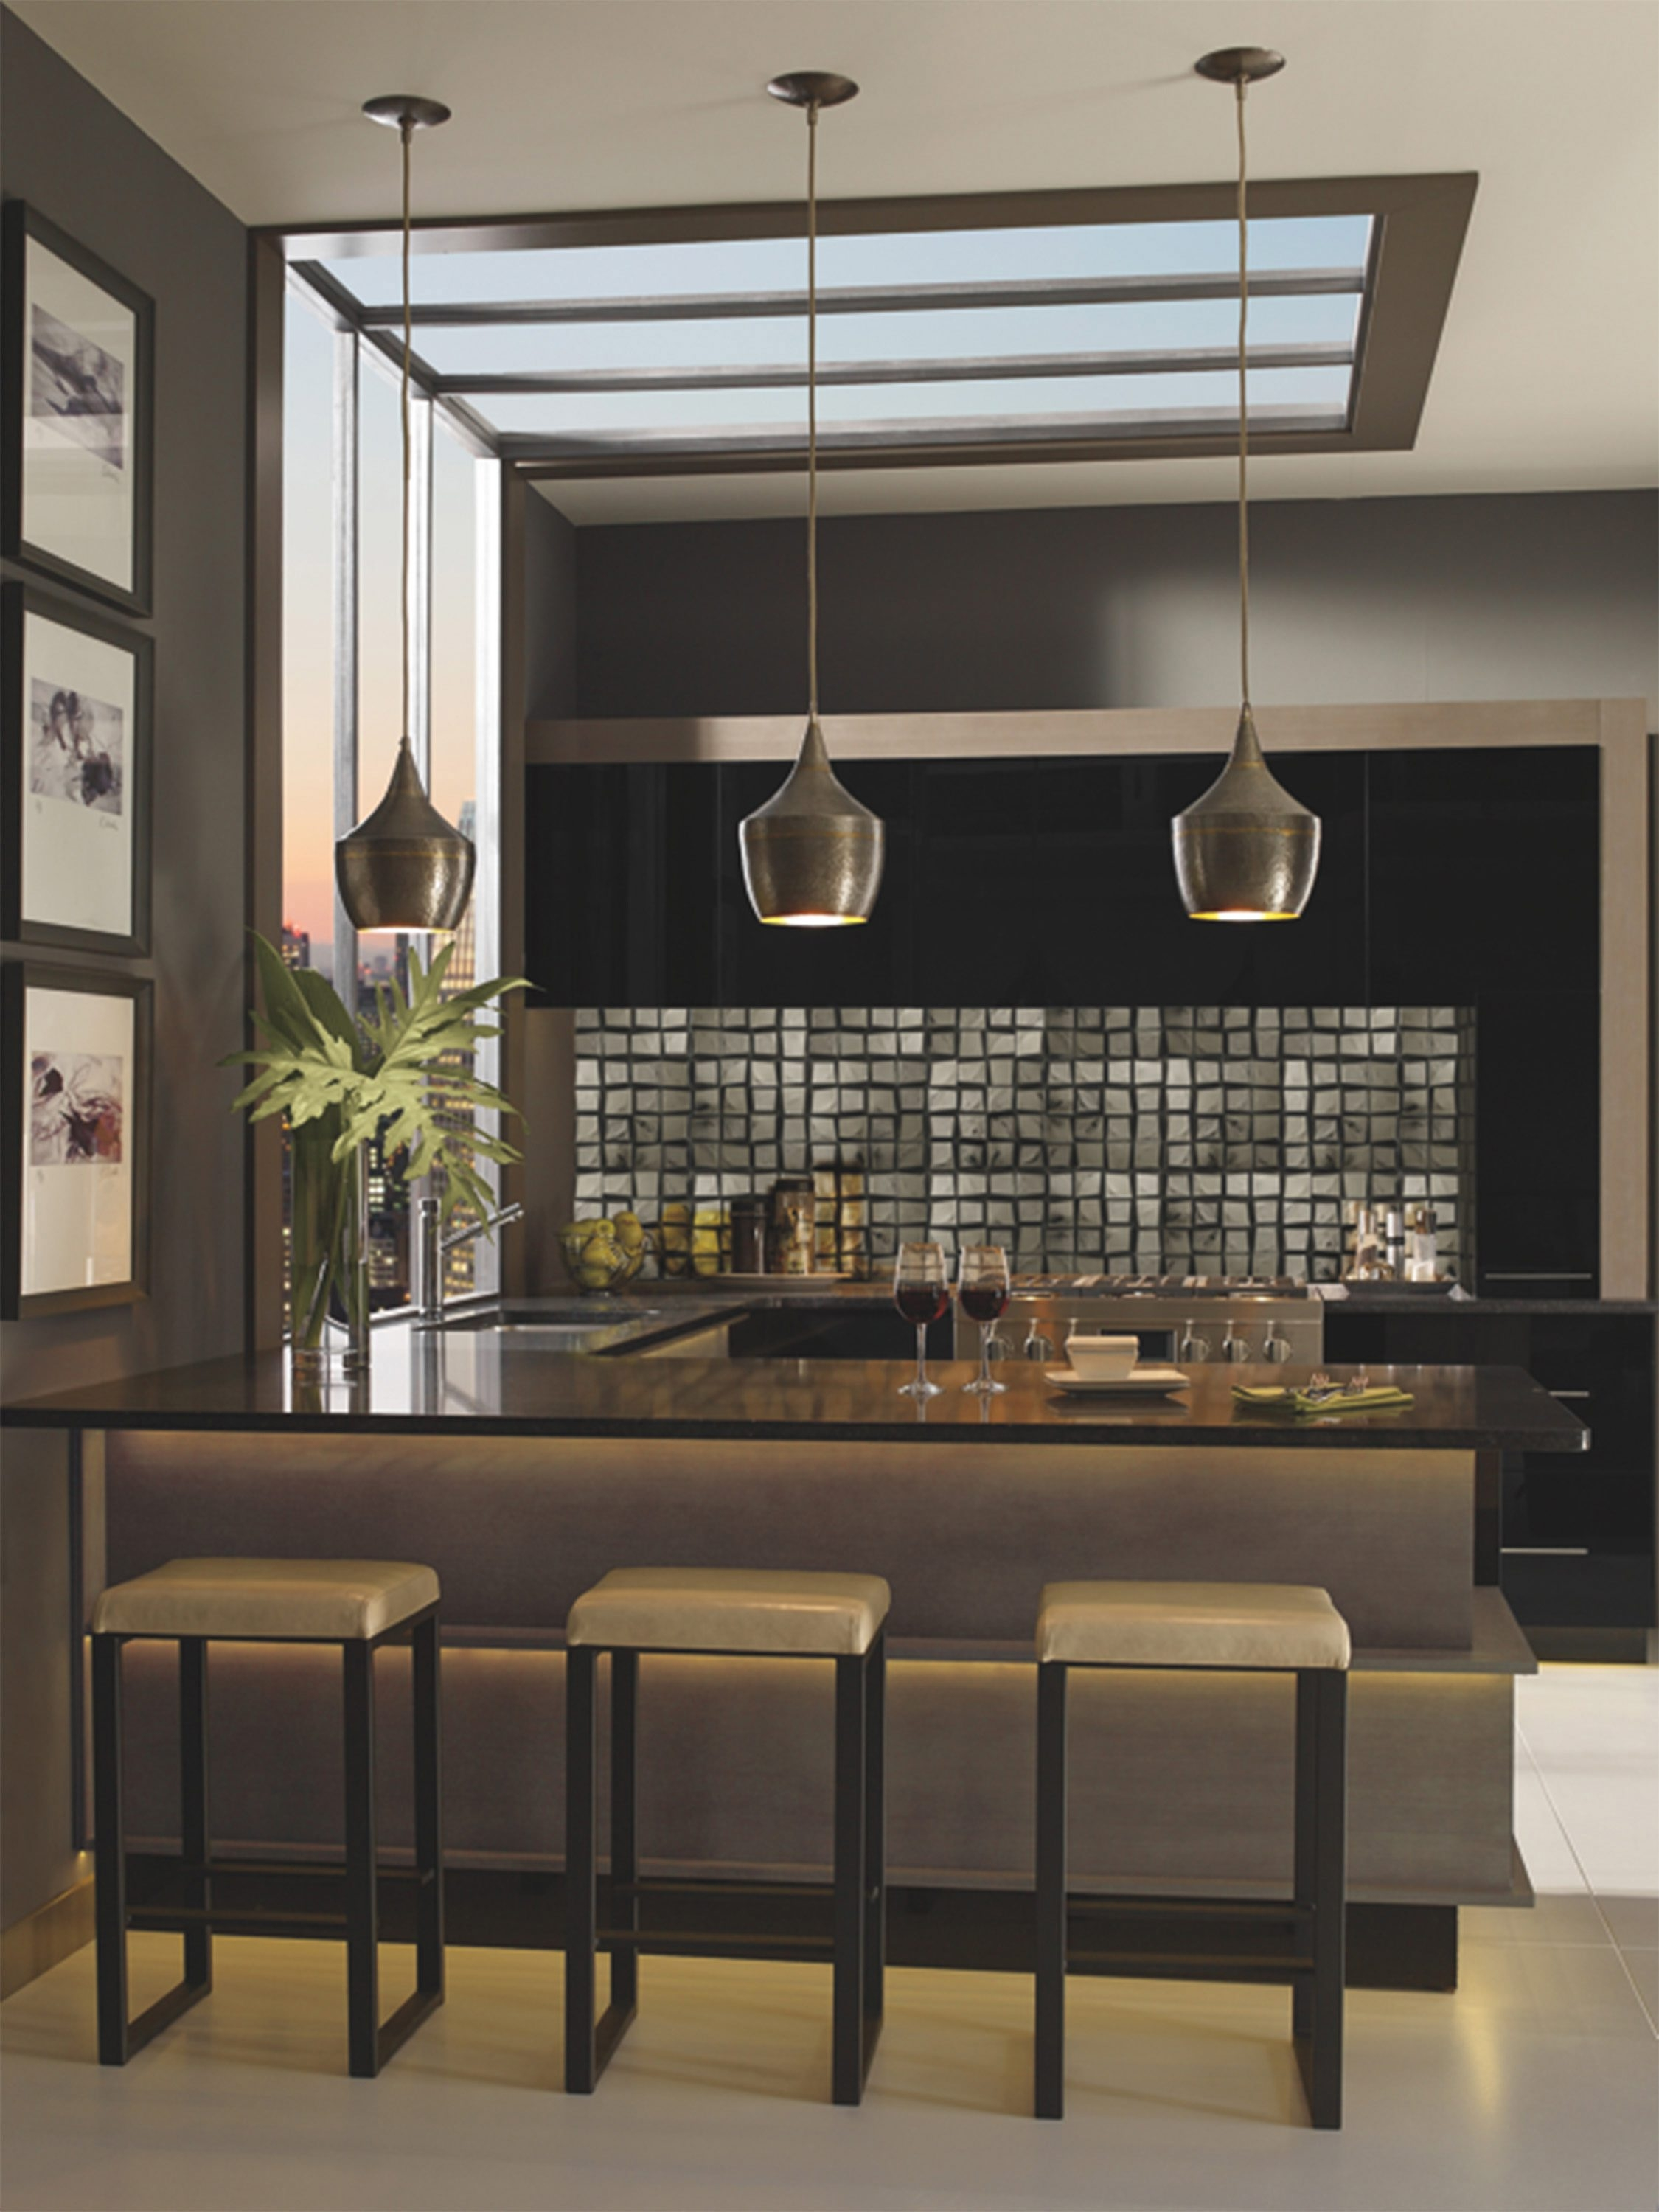 Kitchen design trends this year include lots of glass and metal.